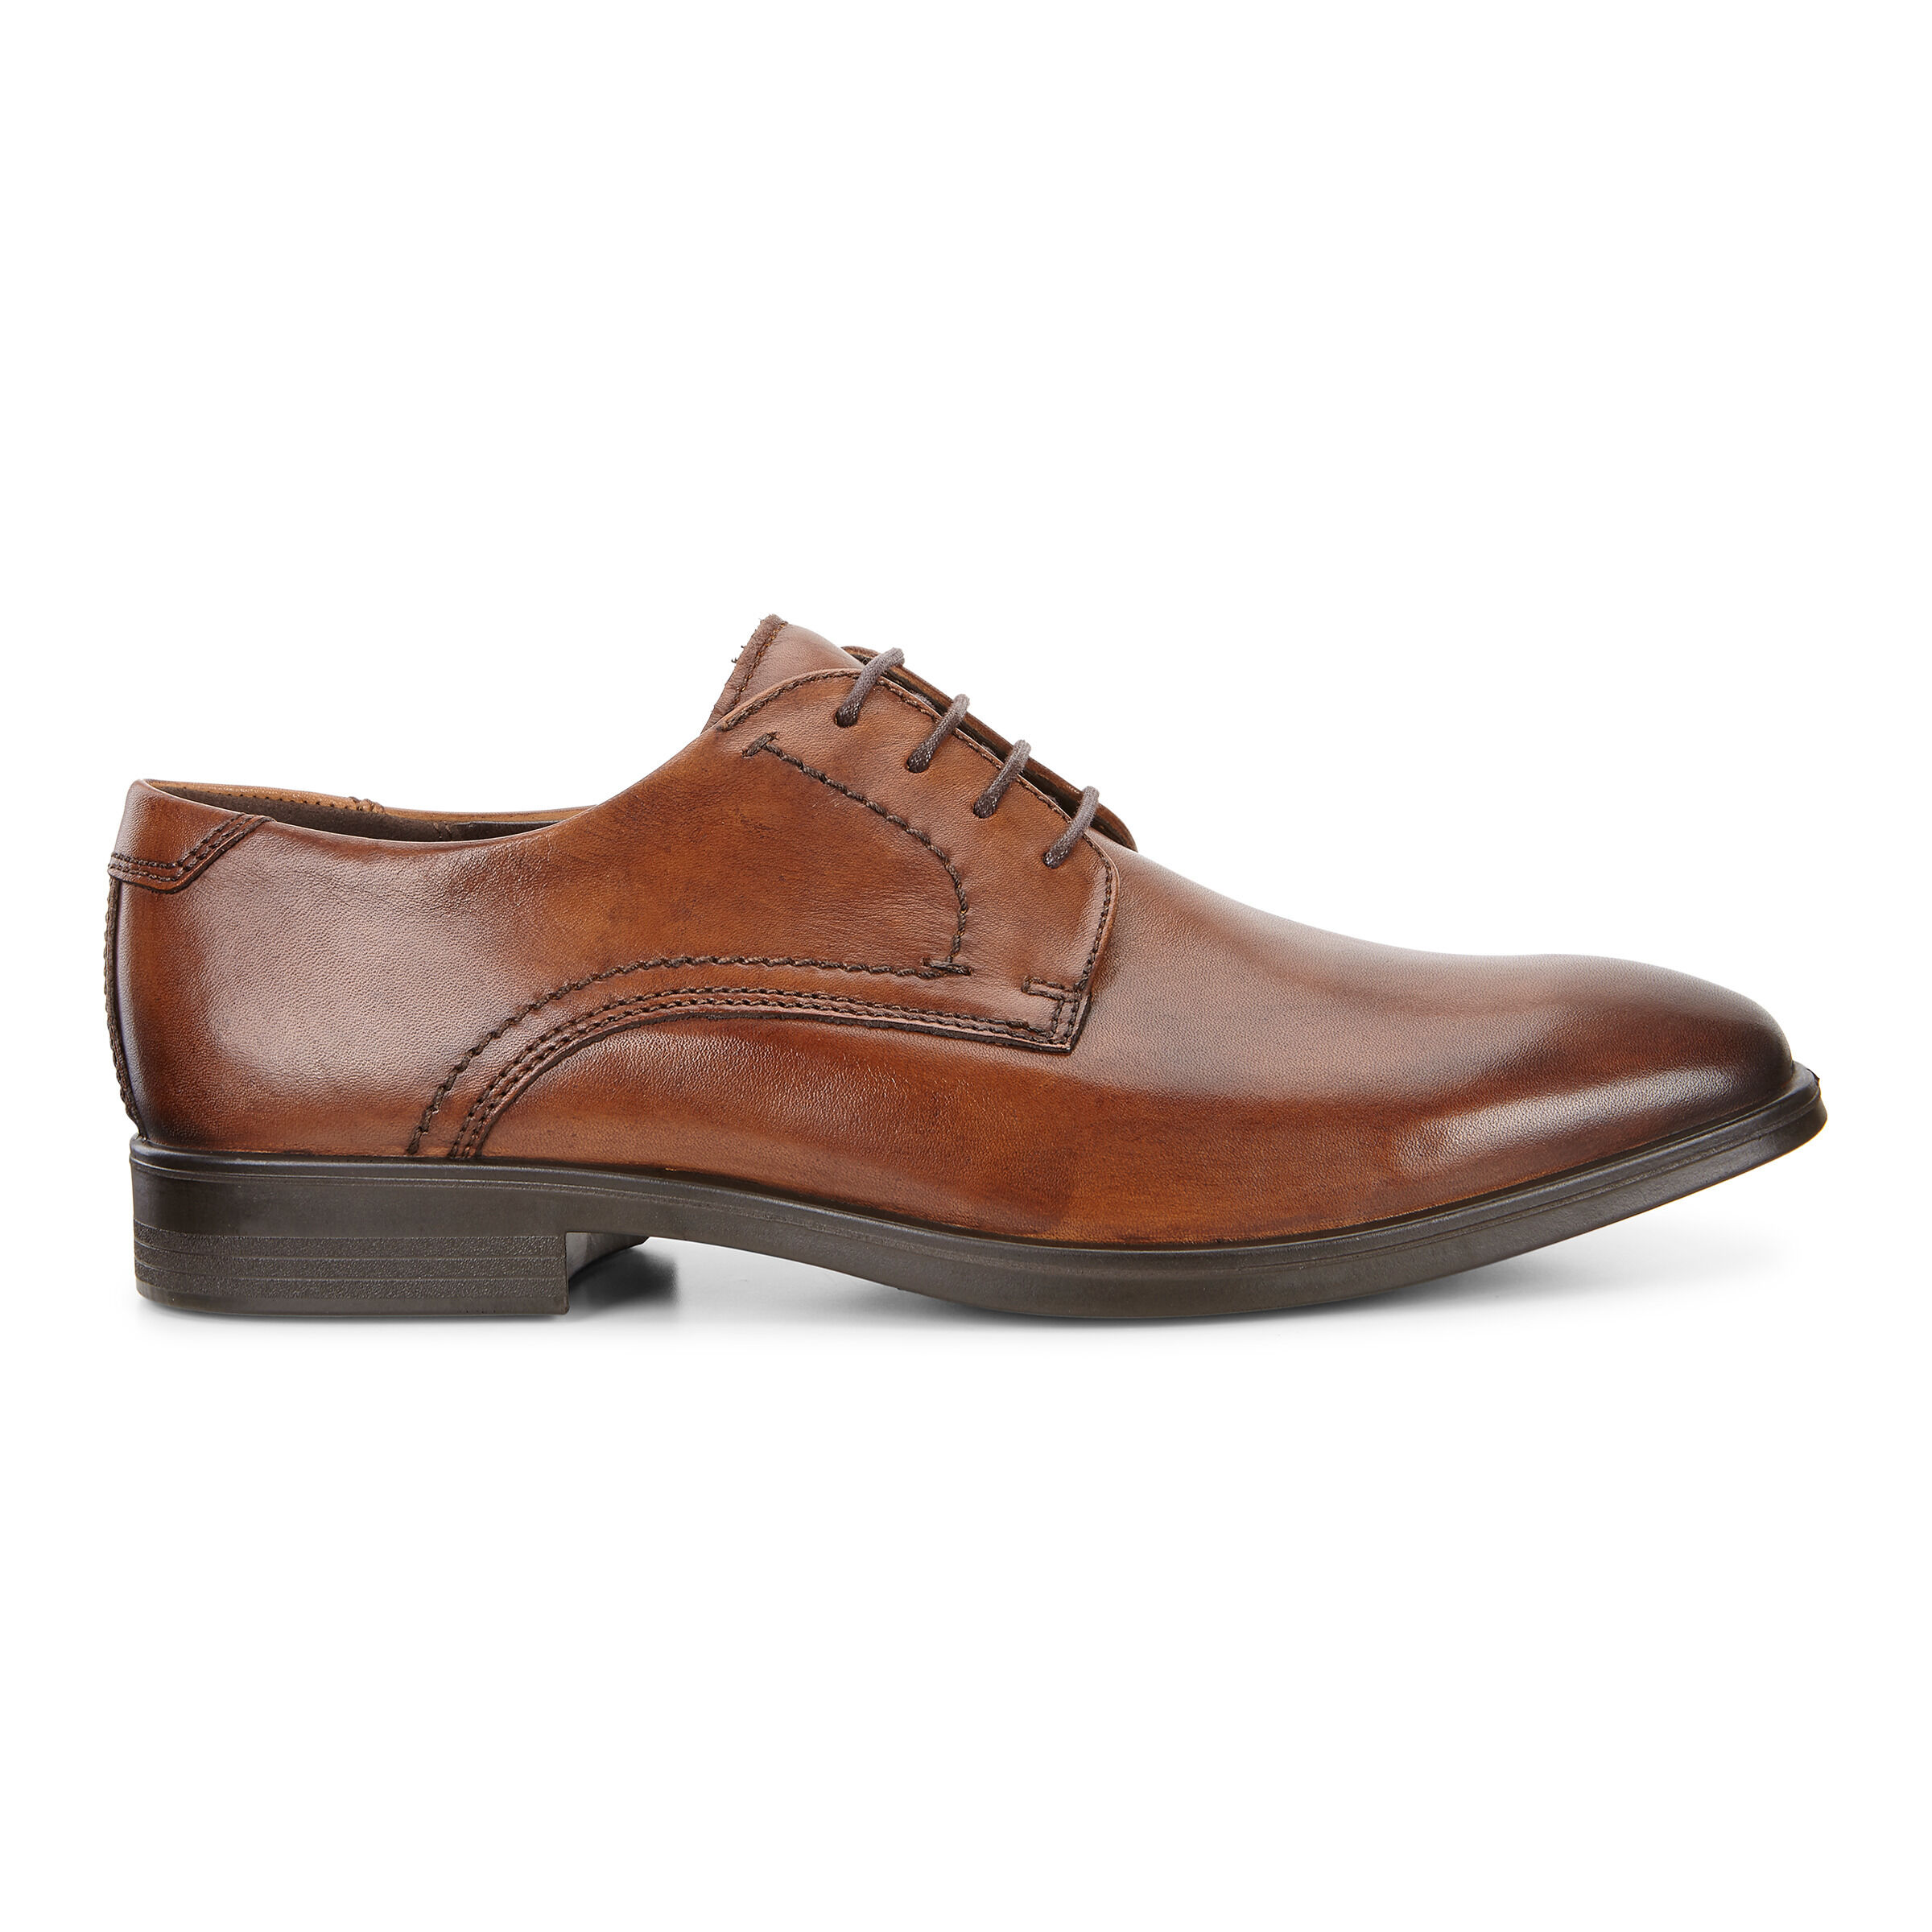 ECCO Melbourne Tie Oxford NEW Men's Shoes in Amber Leather